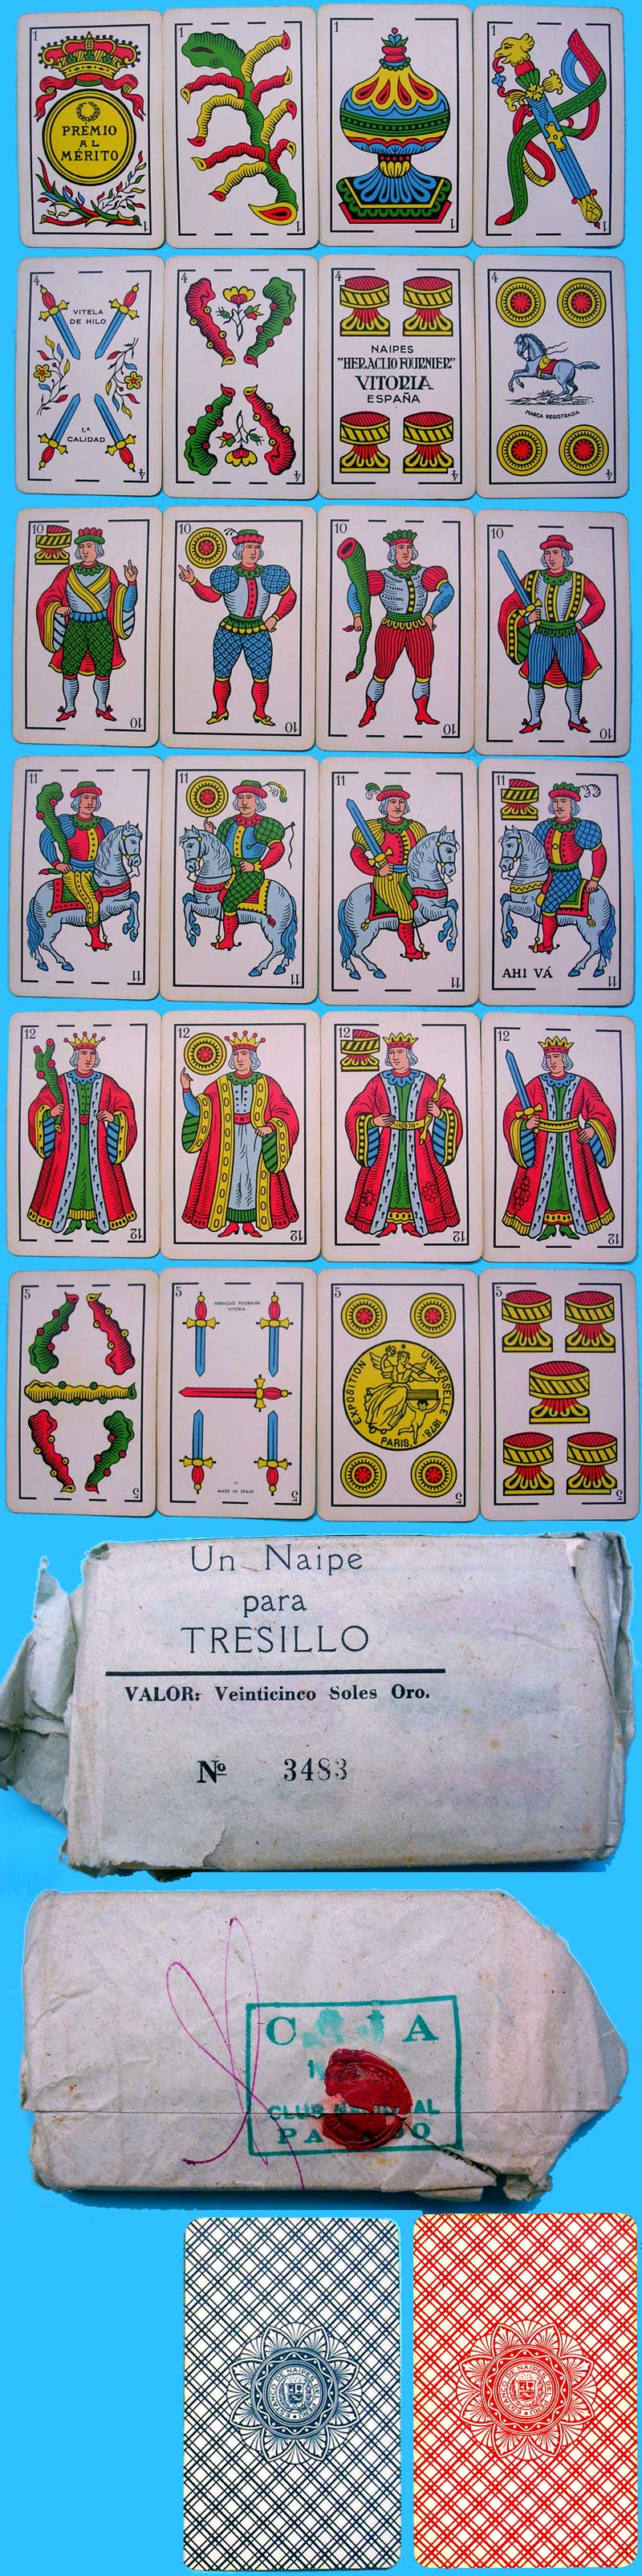 Playing-cards for export to Peru, made by Heraclio Fournier (Vitoria) Spain